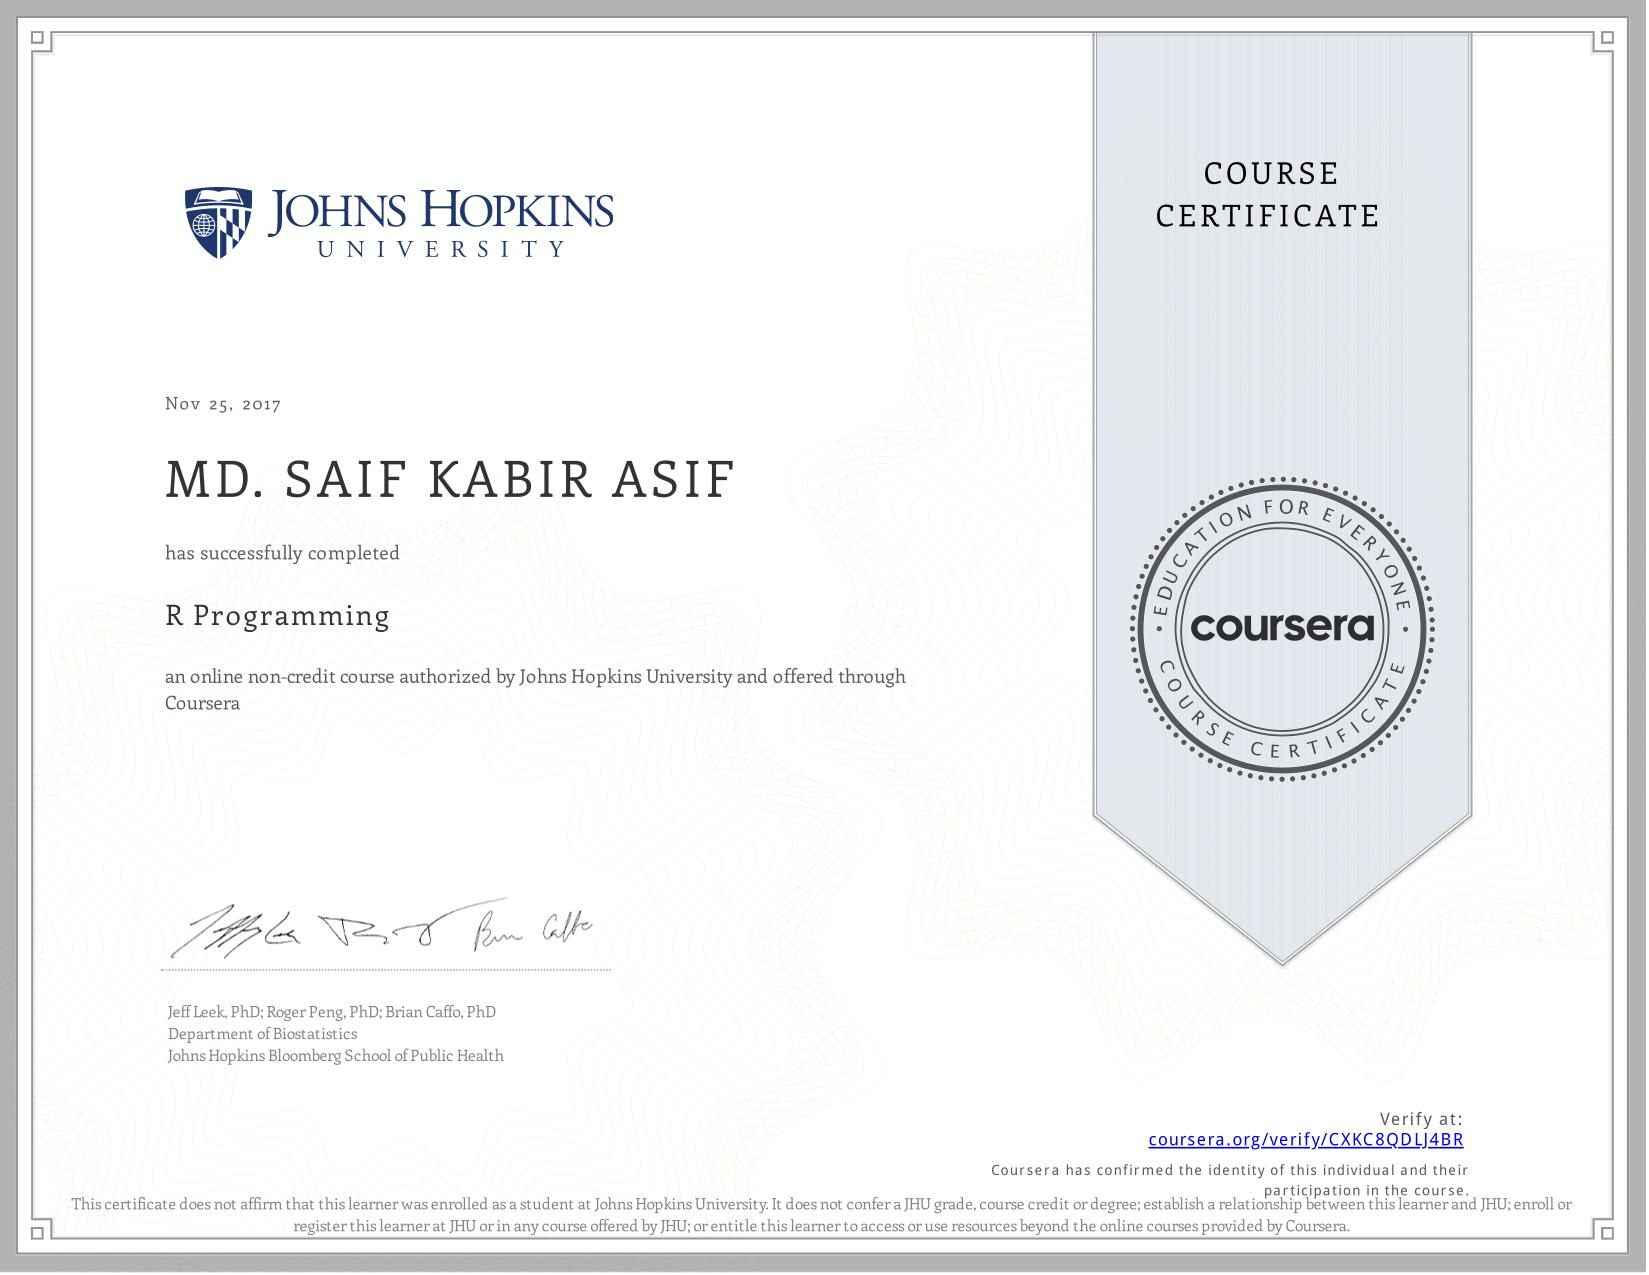 View certificate for Md. Saif Kabir  Asif, R Programming, an online non-credit course authorized by  & Johns Hopkins University and offered through Coursera